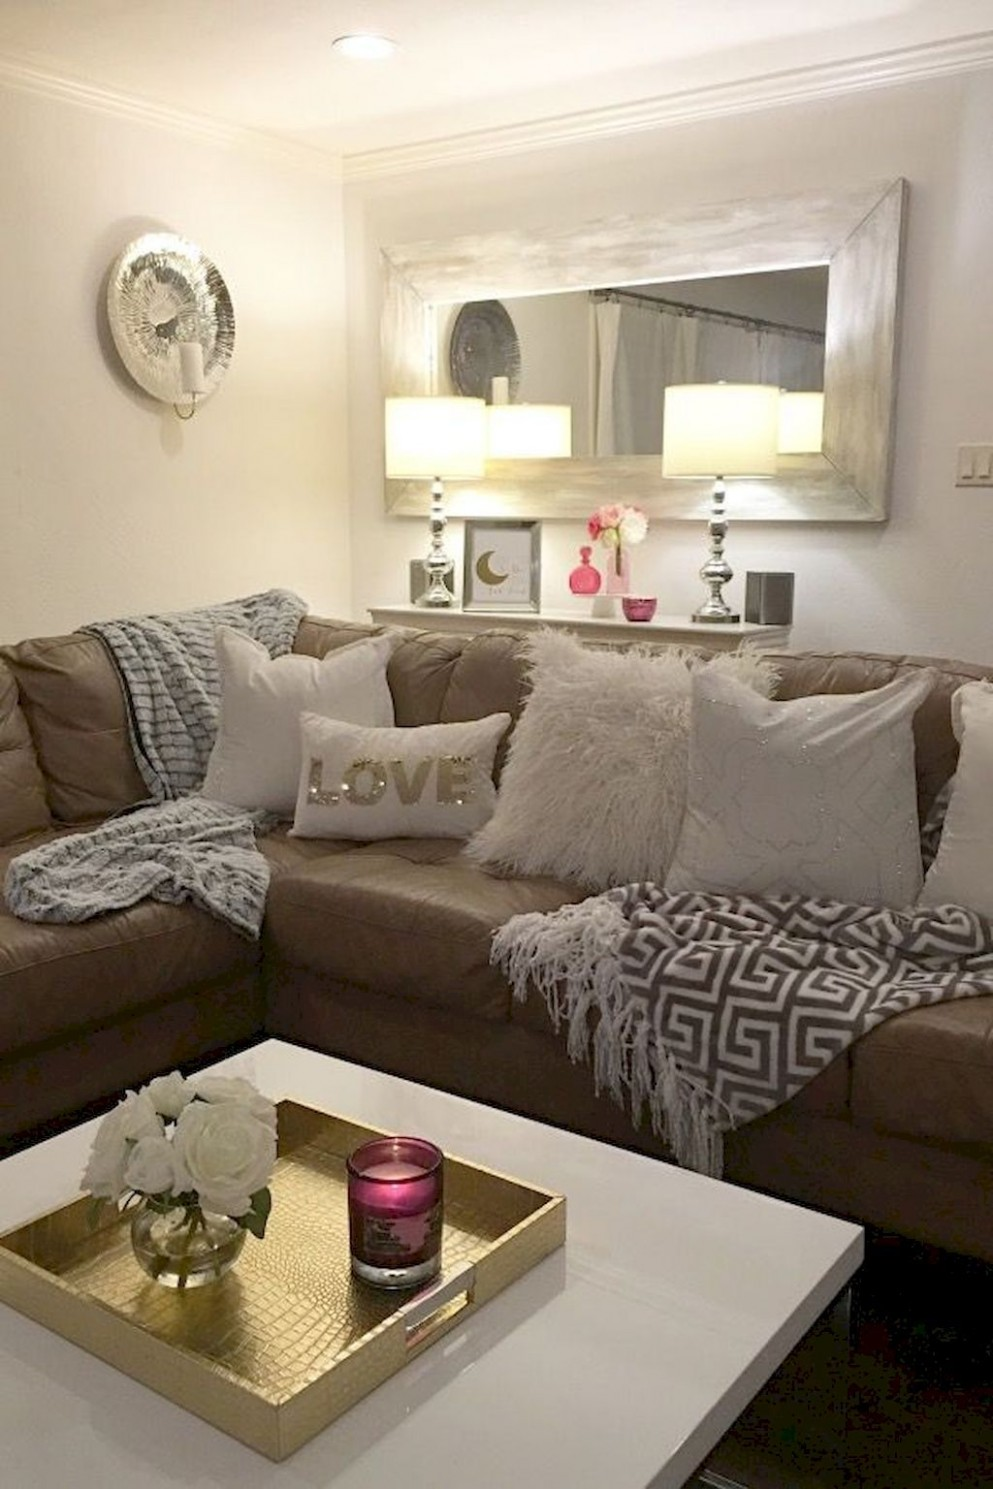 Nice 12 Clever College Apartment Decorating Ideas on A Budget  - Apartment Decorating Ideas Article